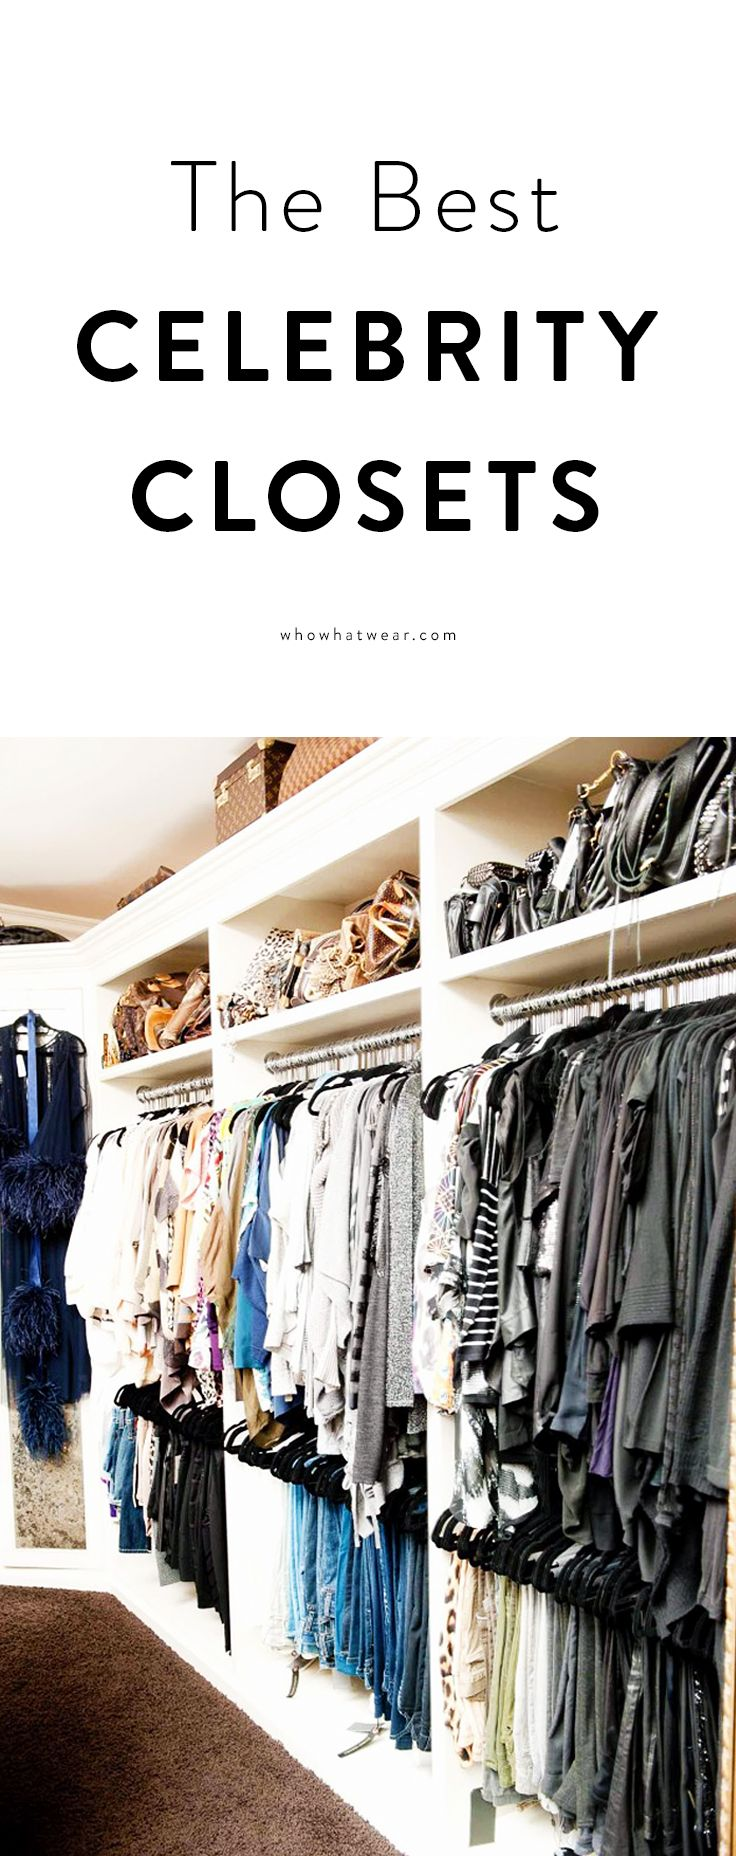 Dreamy walk-in closets from Khloe Kardashian, Chrissy Teigen, and more